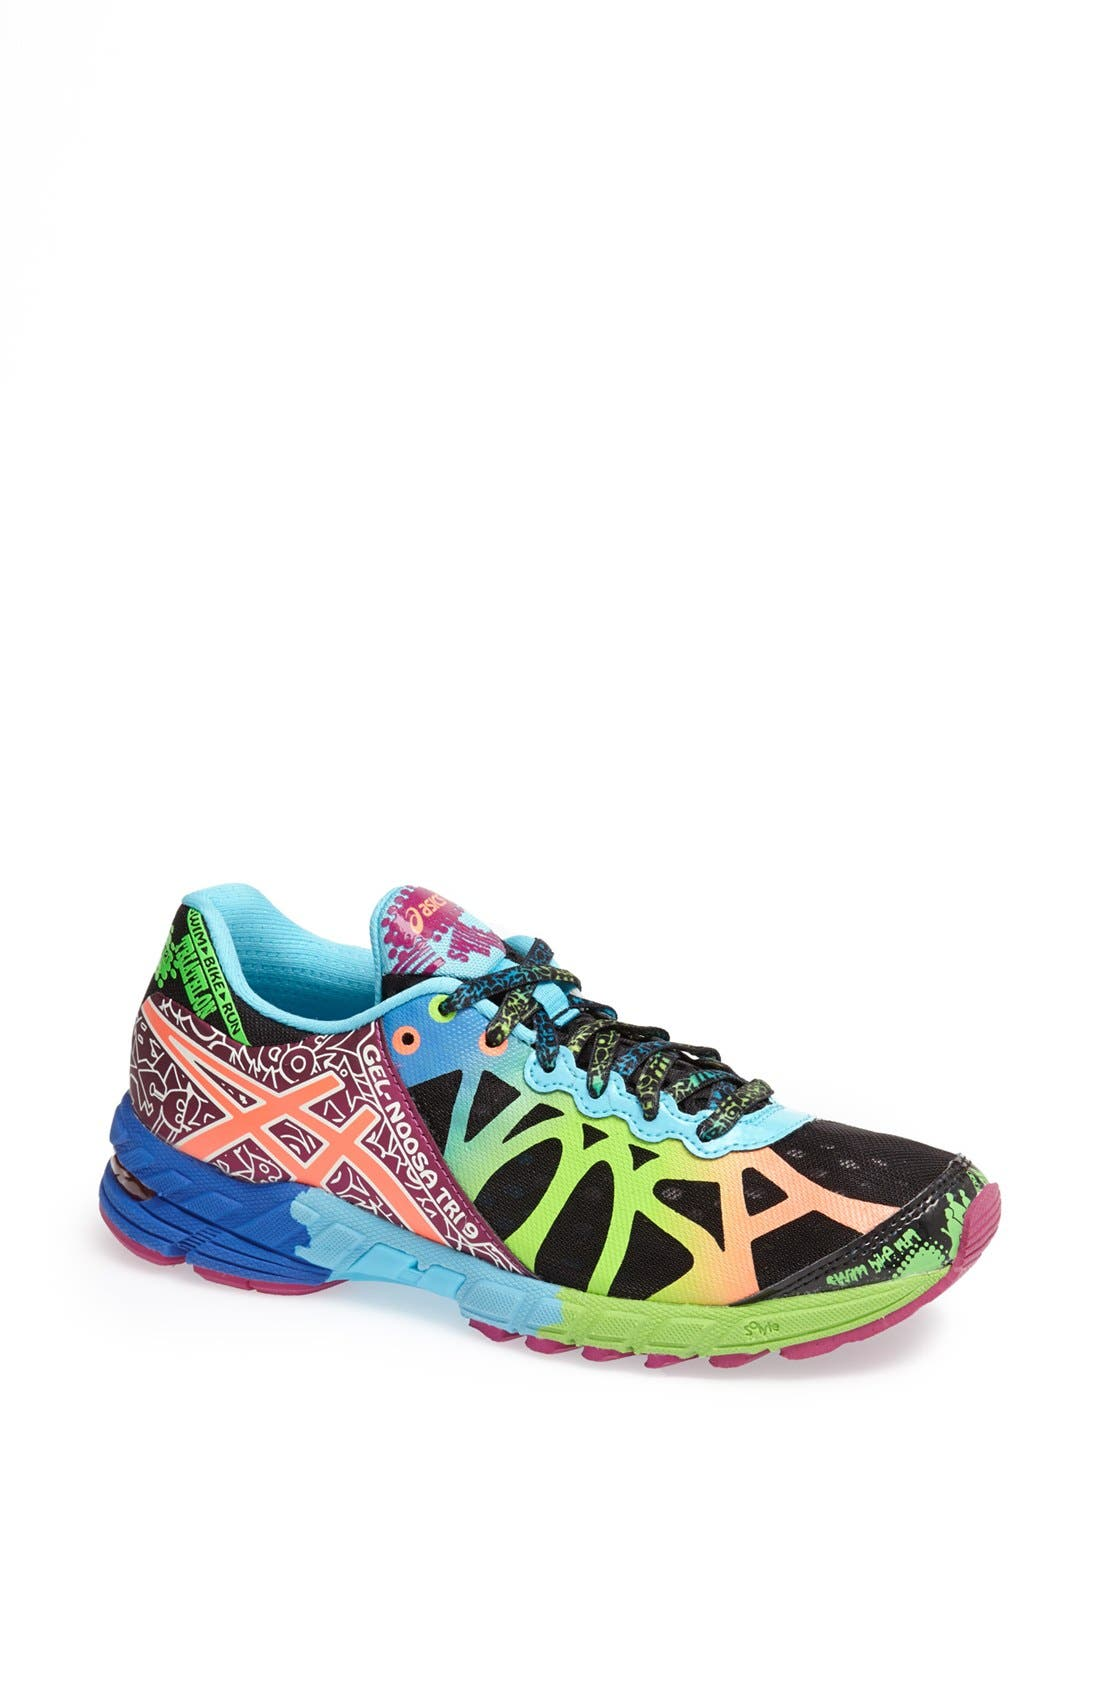 Main Image - ASICS® 'GEL Noosa Tri 9' Tri Running Shoe (Women)